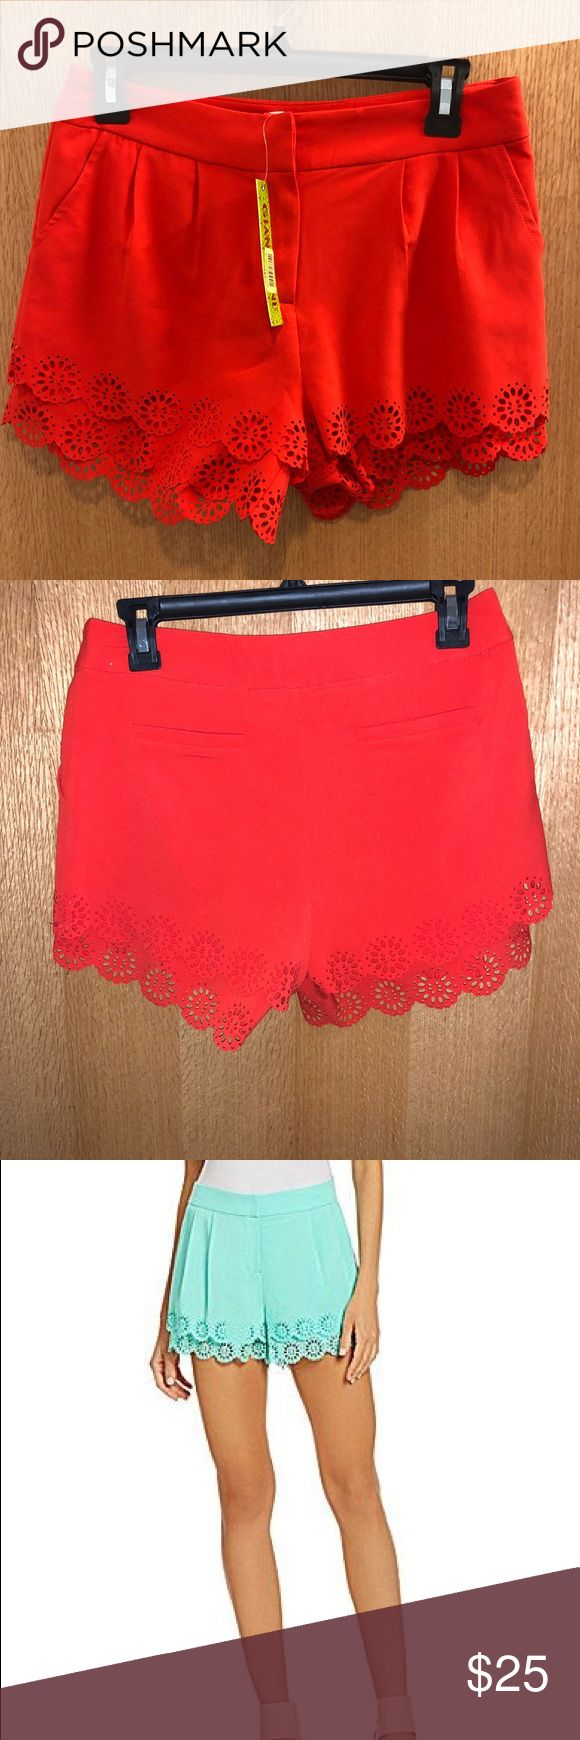 🧡 Gianni Bini Eyelet Lace Trim Shorts 🆕 Brand new with tags! Women's Gianni Bini Leighton Shorts. Women's small. Color is poppy - a dark orangish-red color. Eyelet lace trim. Classy and comfy! Last pic is same shorts in a different color. Gianni Bini Shorts